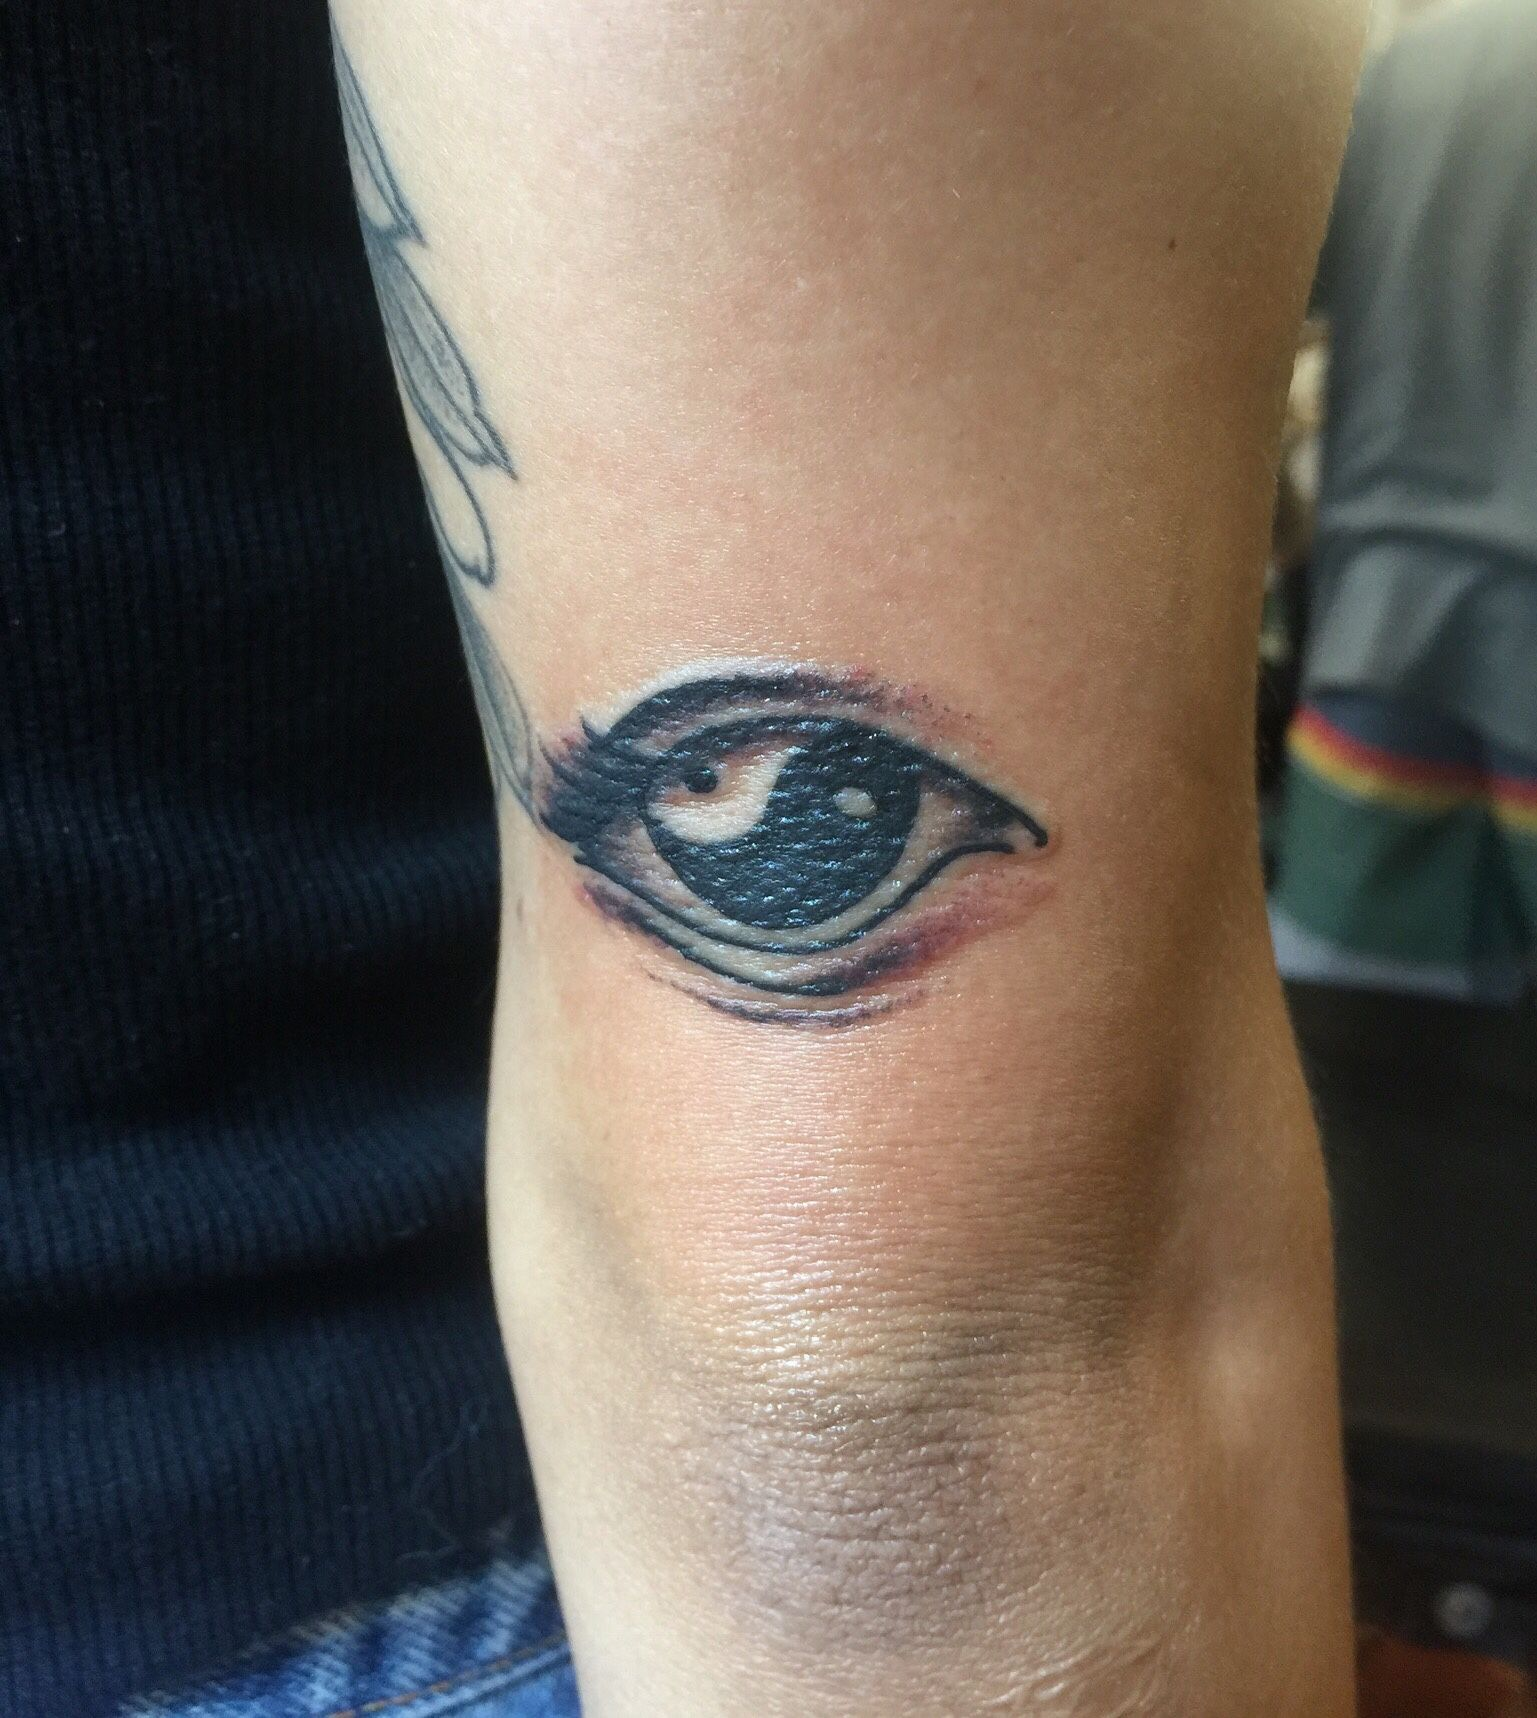 Yin yang eye tattoo made by Jef Wright!